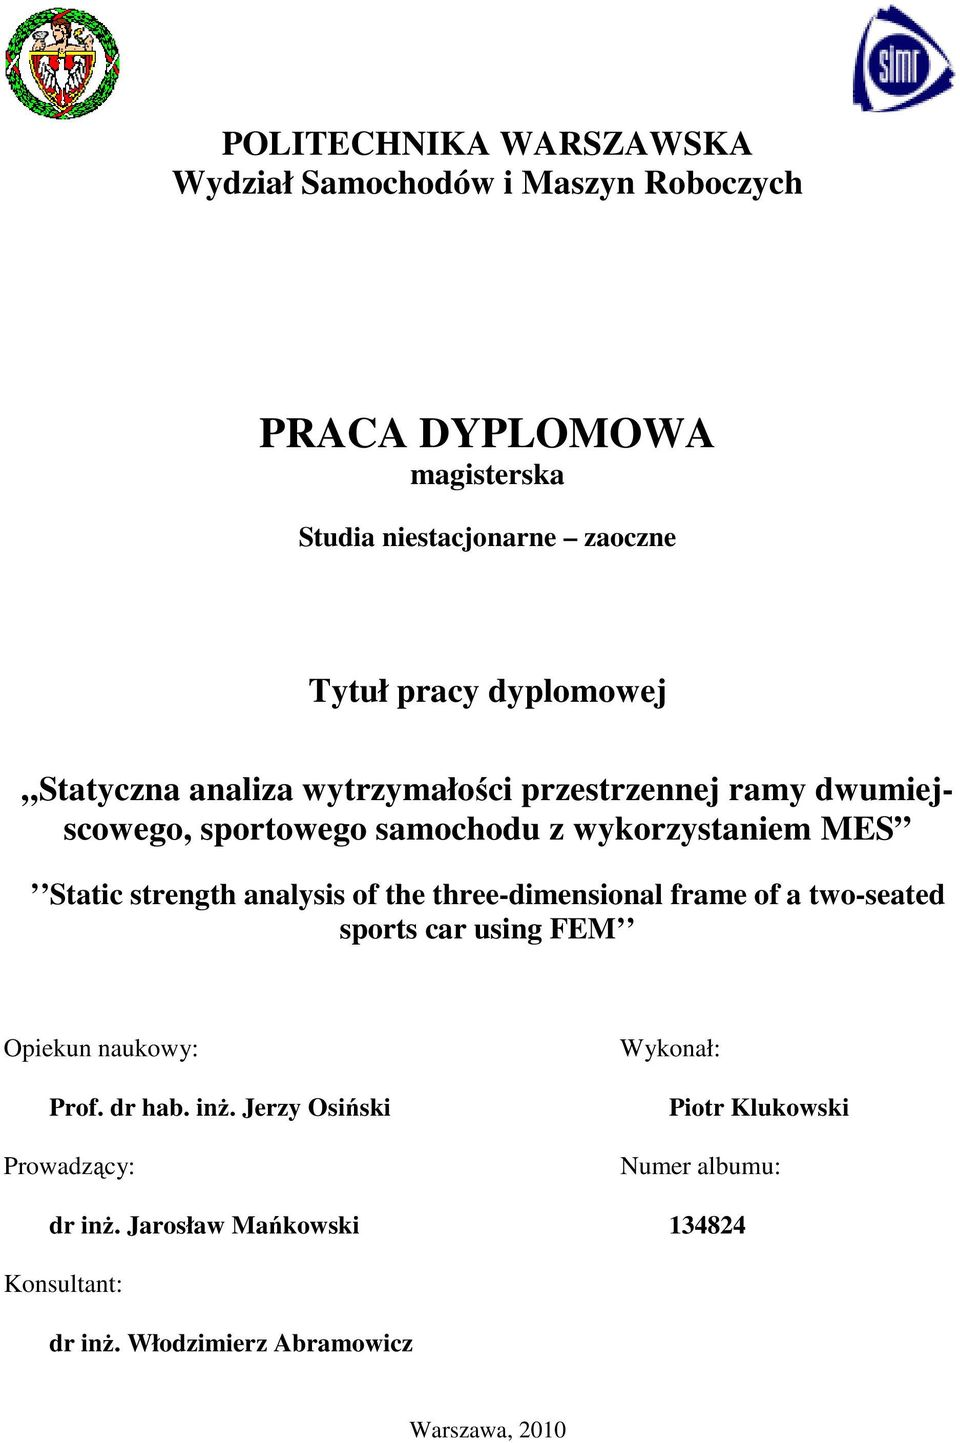 strength analysis of the three-dimensional frame of a two-seated sports car using FEM Opiekun naukowy: Prof. dr hab. inż.